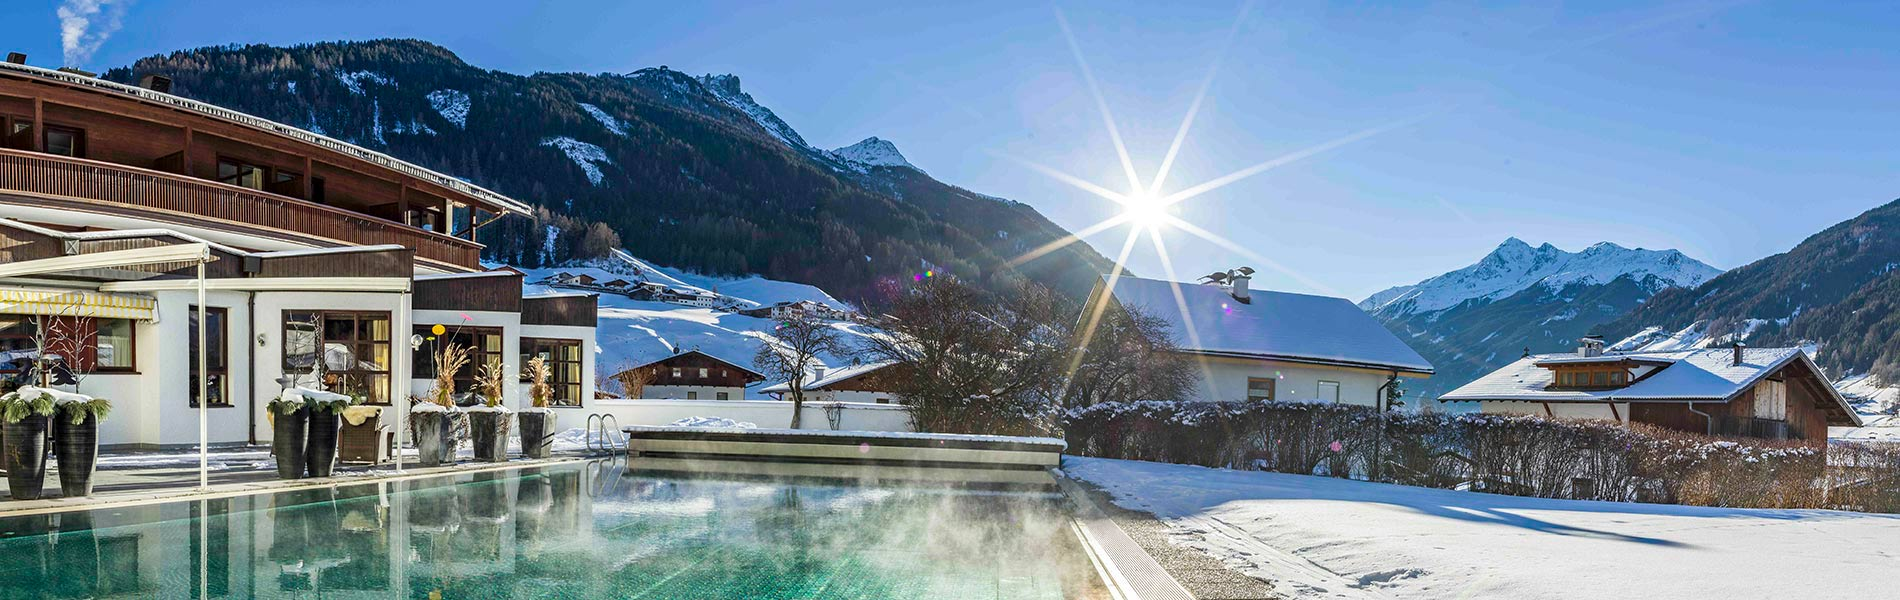 Happy Stubai Hotel Neustift Tirol Austria Hostel Winterurlaub